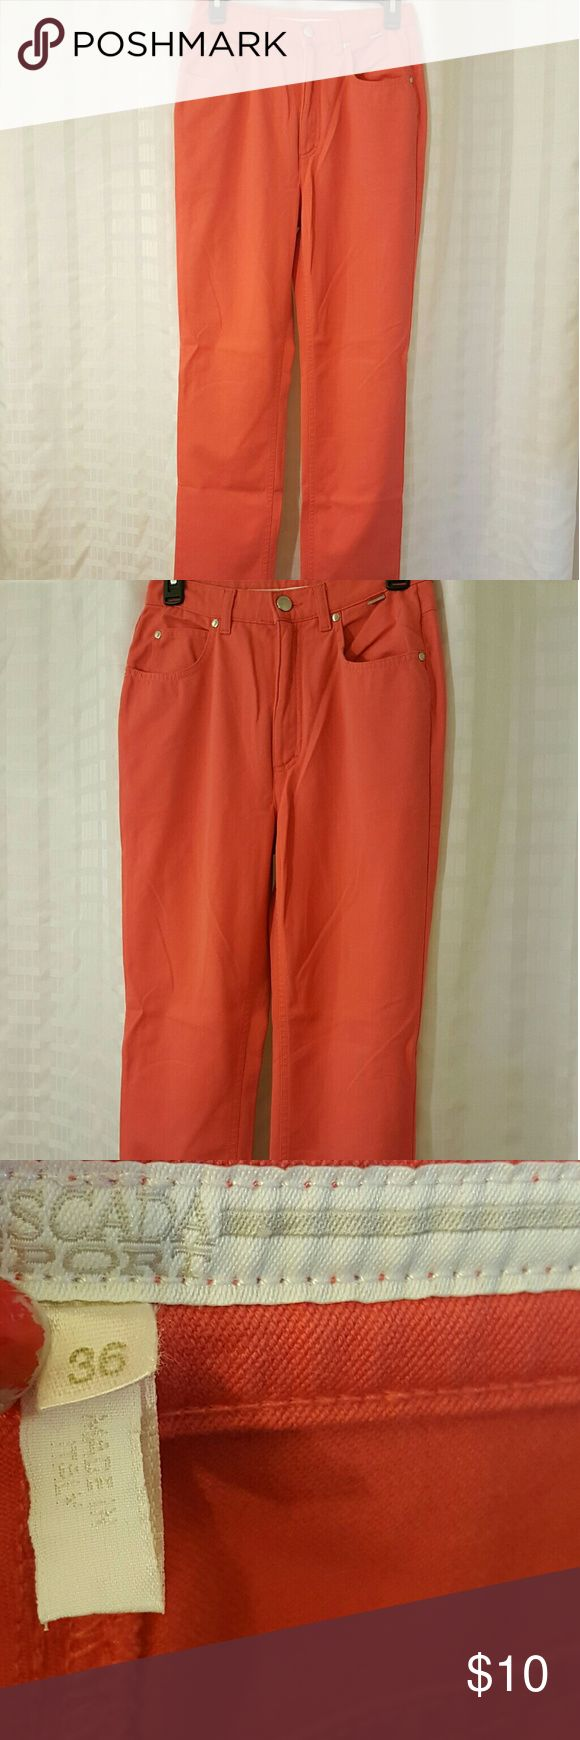 Escada Sport Pants - Made in Italy Escada Sport Pants- Made in Italy  Size - 36  Peach/Pink coloring  Great Condition  No rips  Flaw- in photo 5 you will see discoloration above the back pocket. These were/are unworn and I cleaned them and color bled onto them. It is very easily covered with a shirt. It is not a bright noticable spot but it is there sadly.  Stretchy and soft! Escada Jeans Skinny